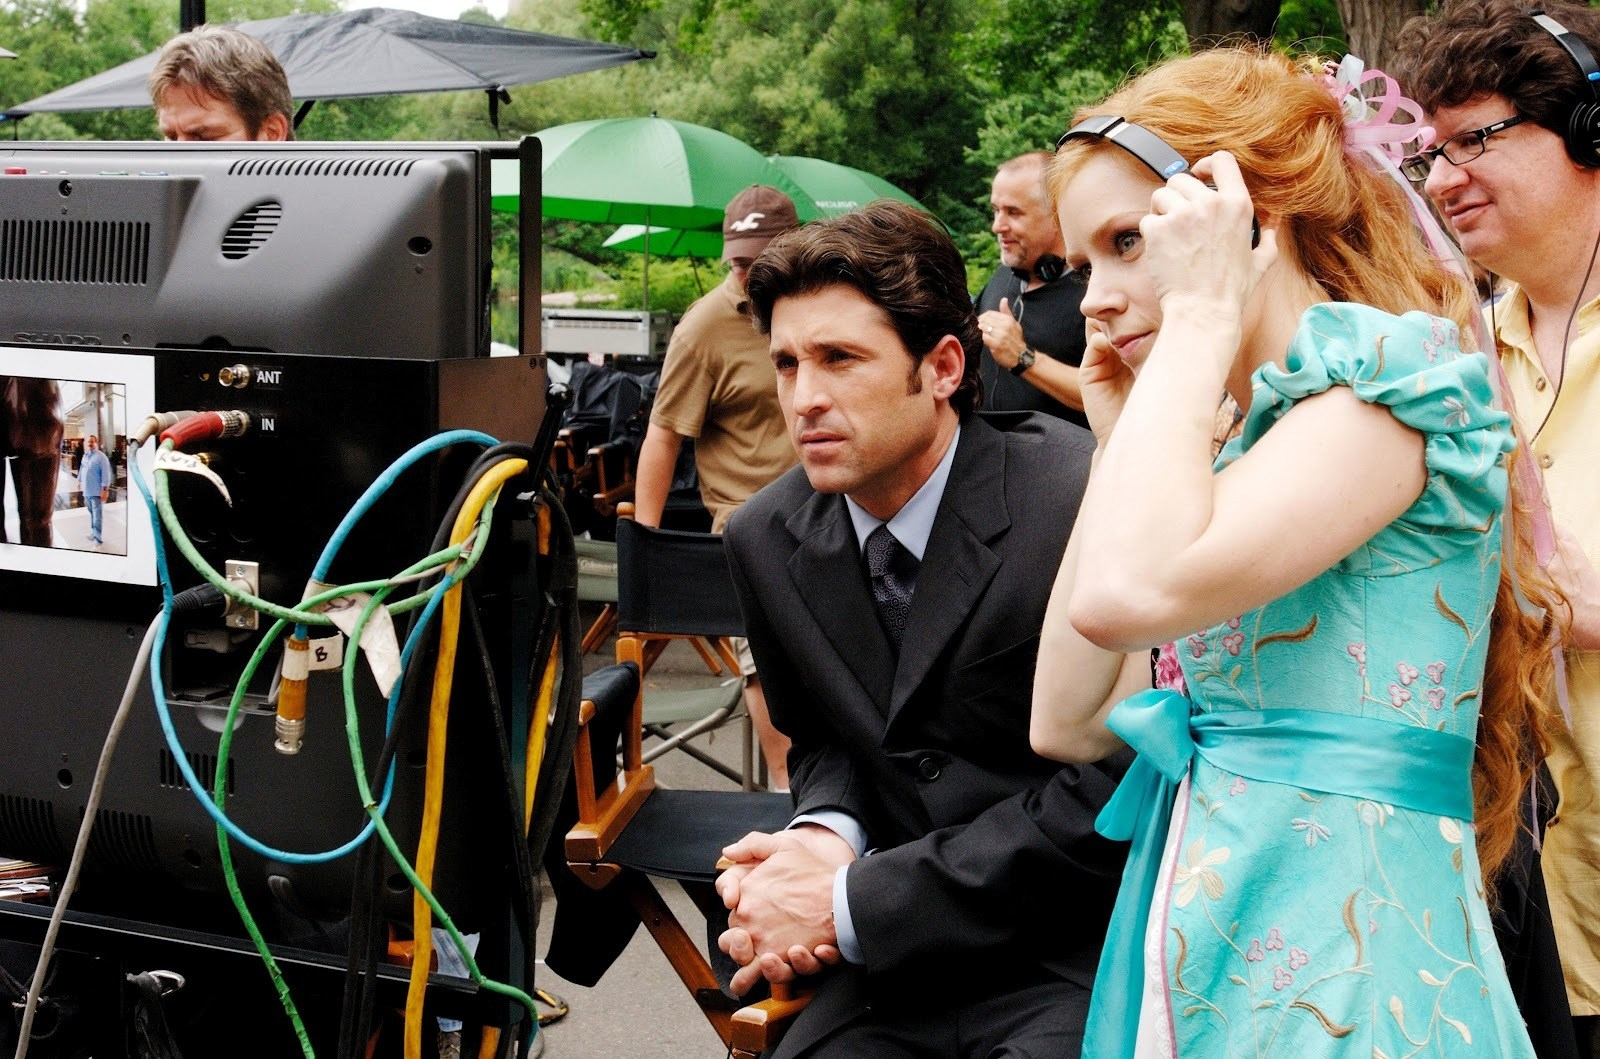 Enchanted (2007) Behind the Scenes